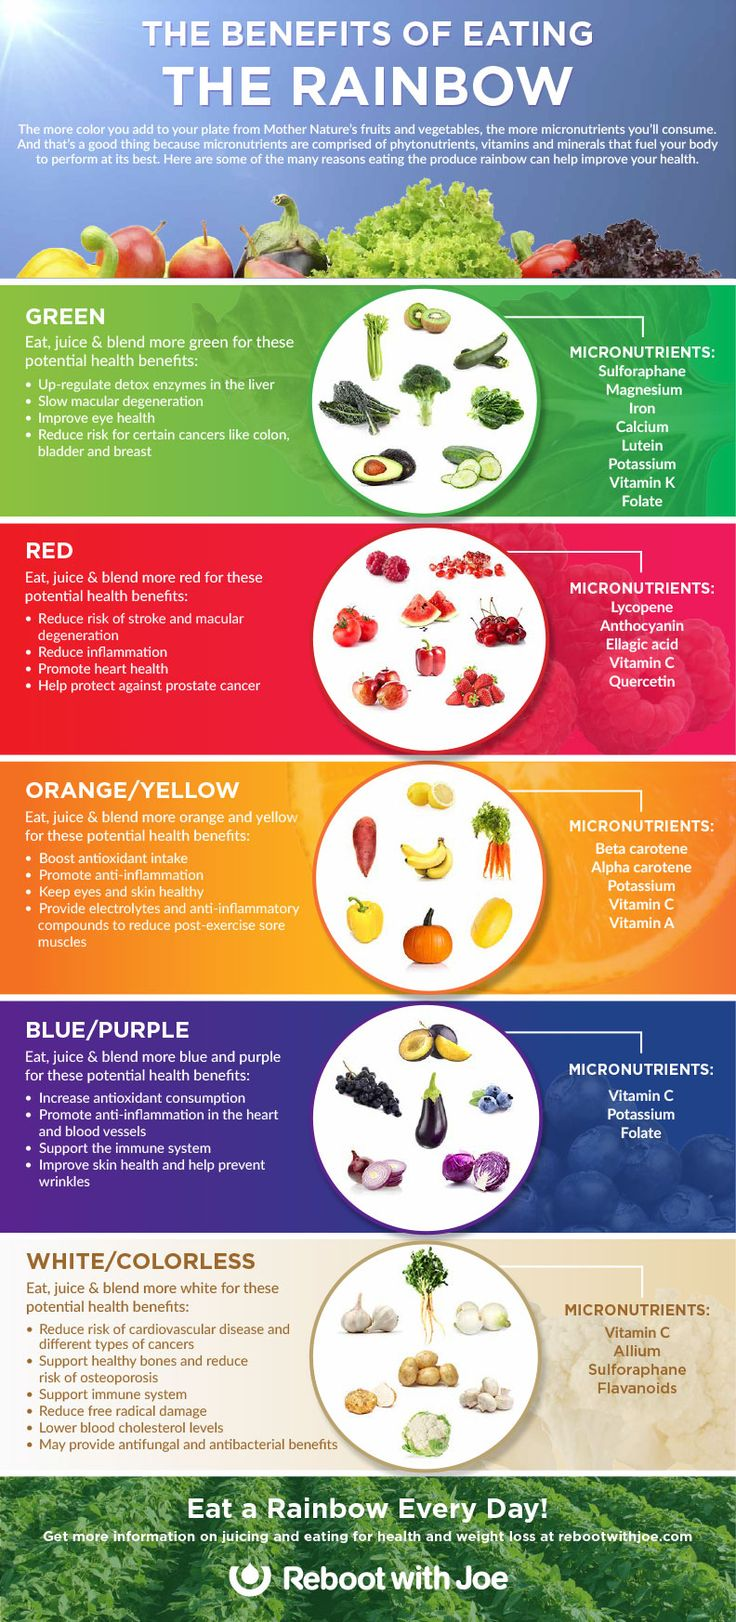 ~~The Benefits of Eating the Rainbow Infographic | Green, red, yellow, orange, blue, purple and white fruits and vegetables that are grown right out of the ground, nourished by sunlight, and are the healthiest foods on the planet | Reboot with Joe~~ balanced eating